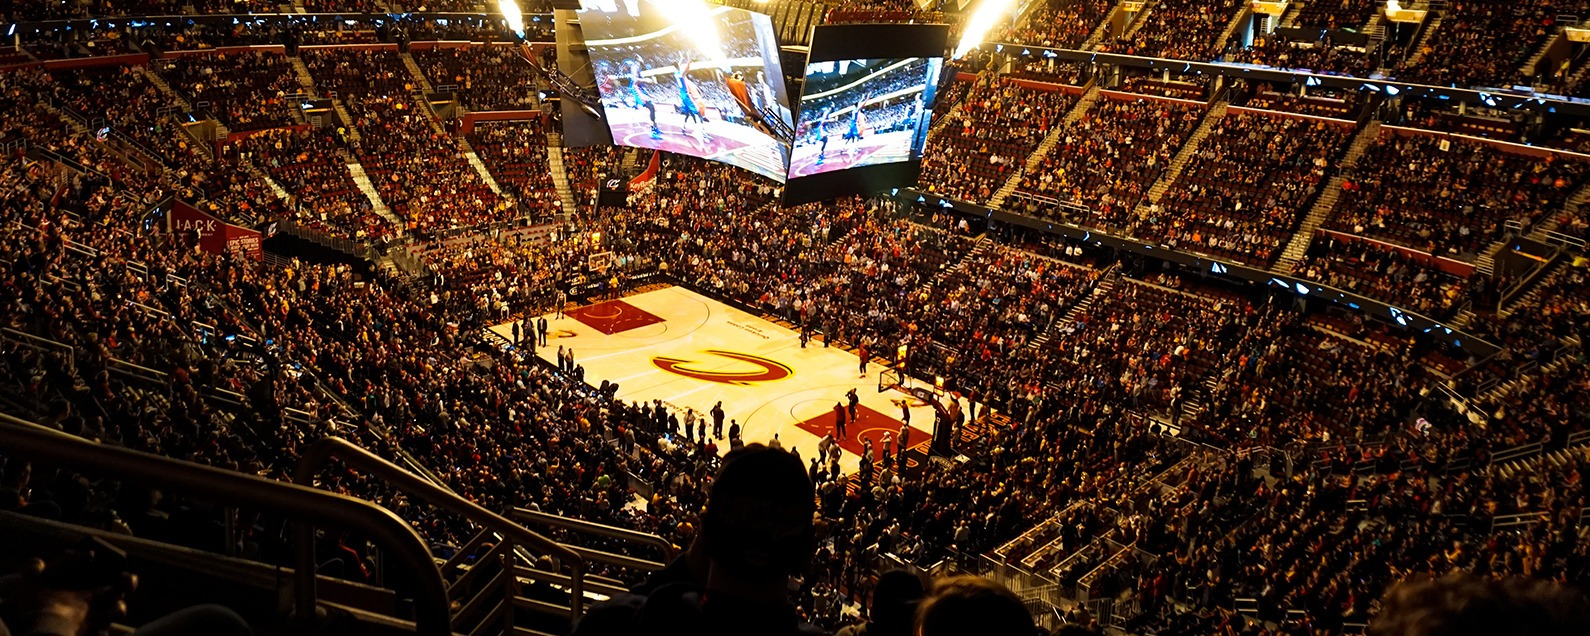 How to Live Stream the NBA Playoffs \u0026 Finals without Cable on Your